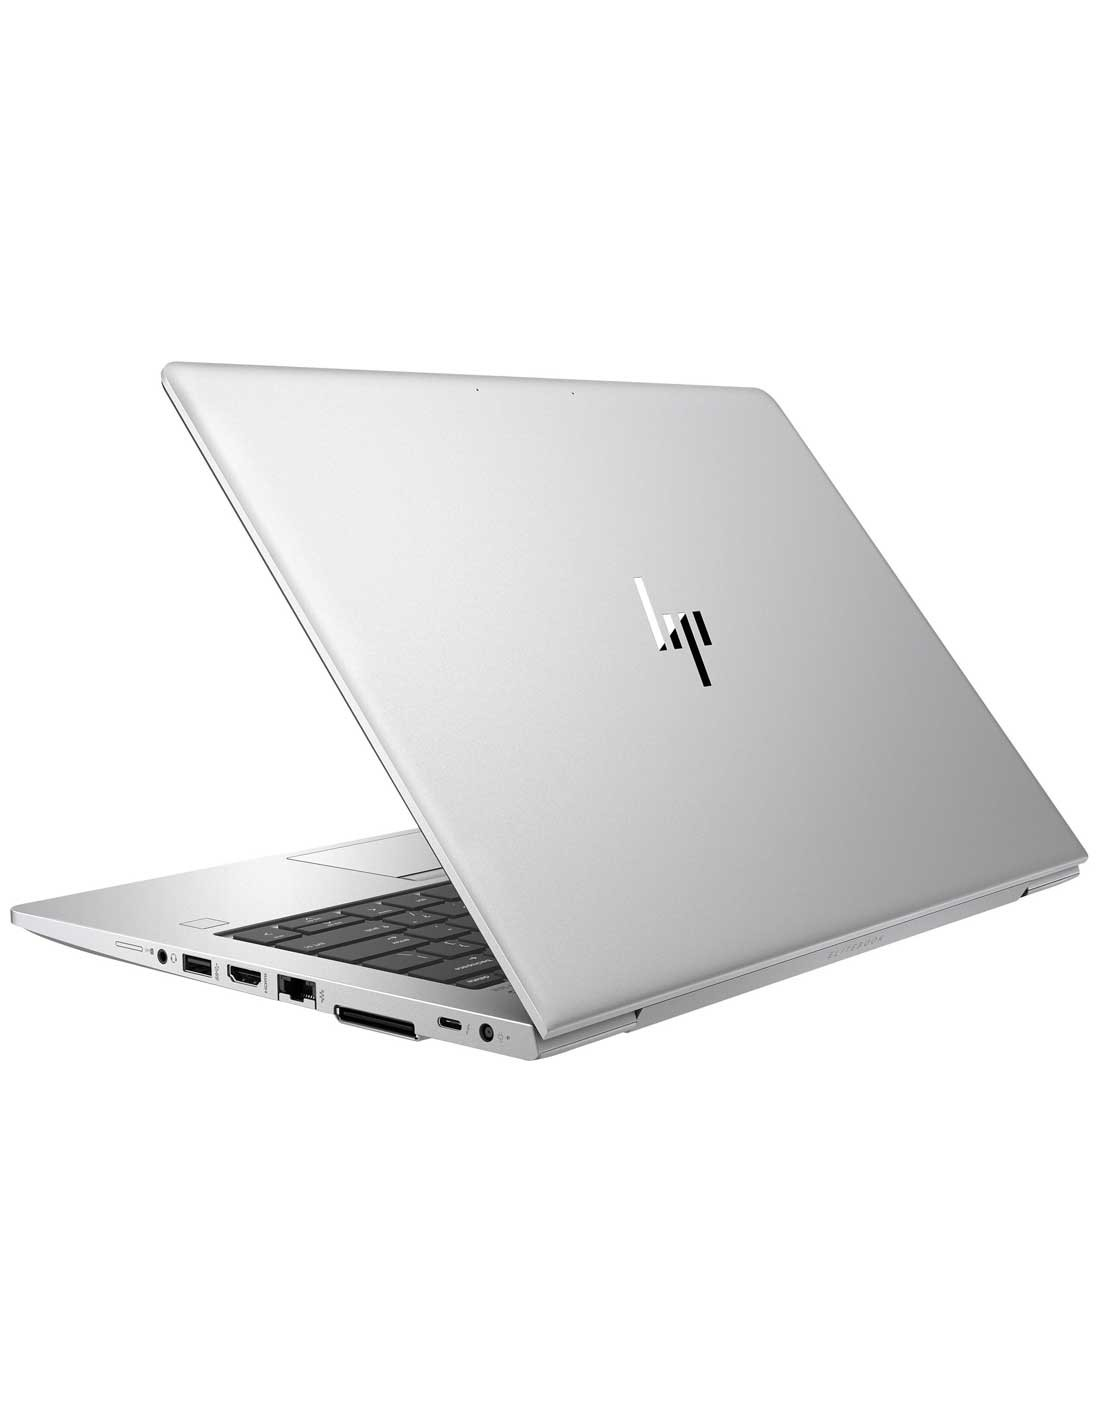 HP EliteBook 840 G5 Notebook i7 images and photos